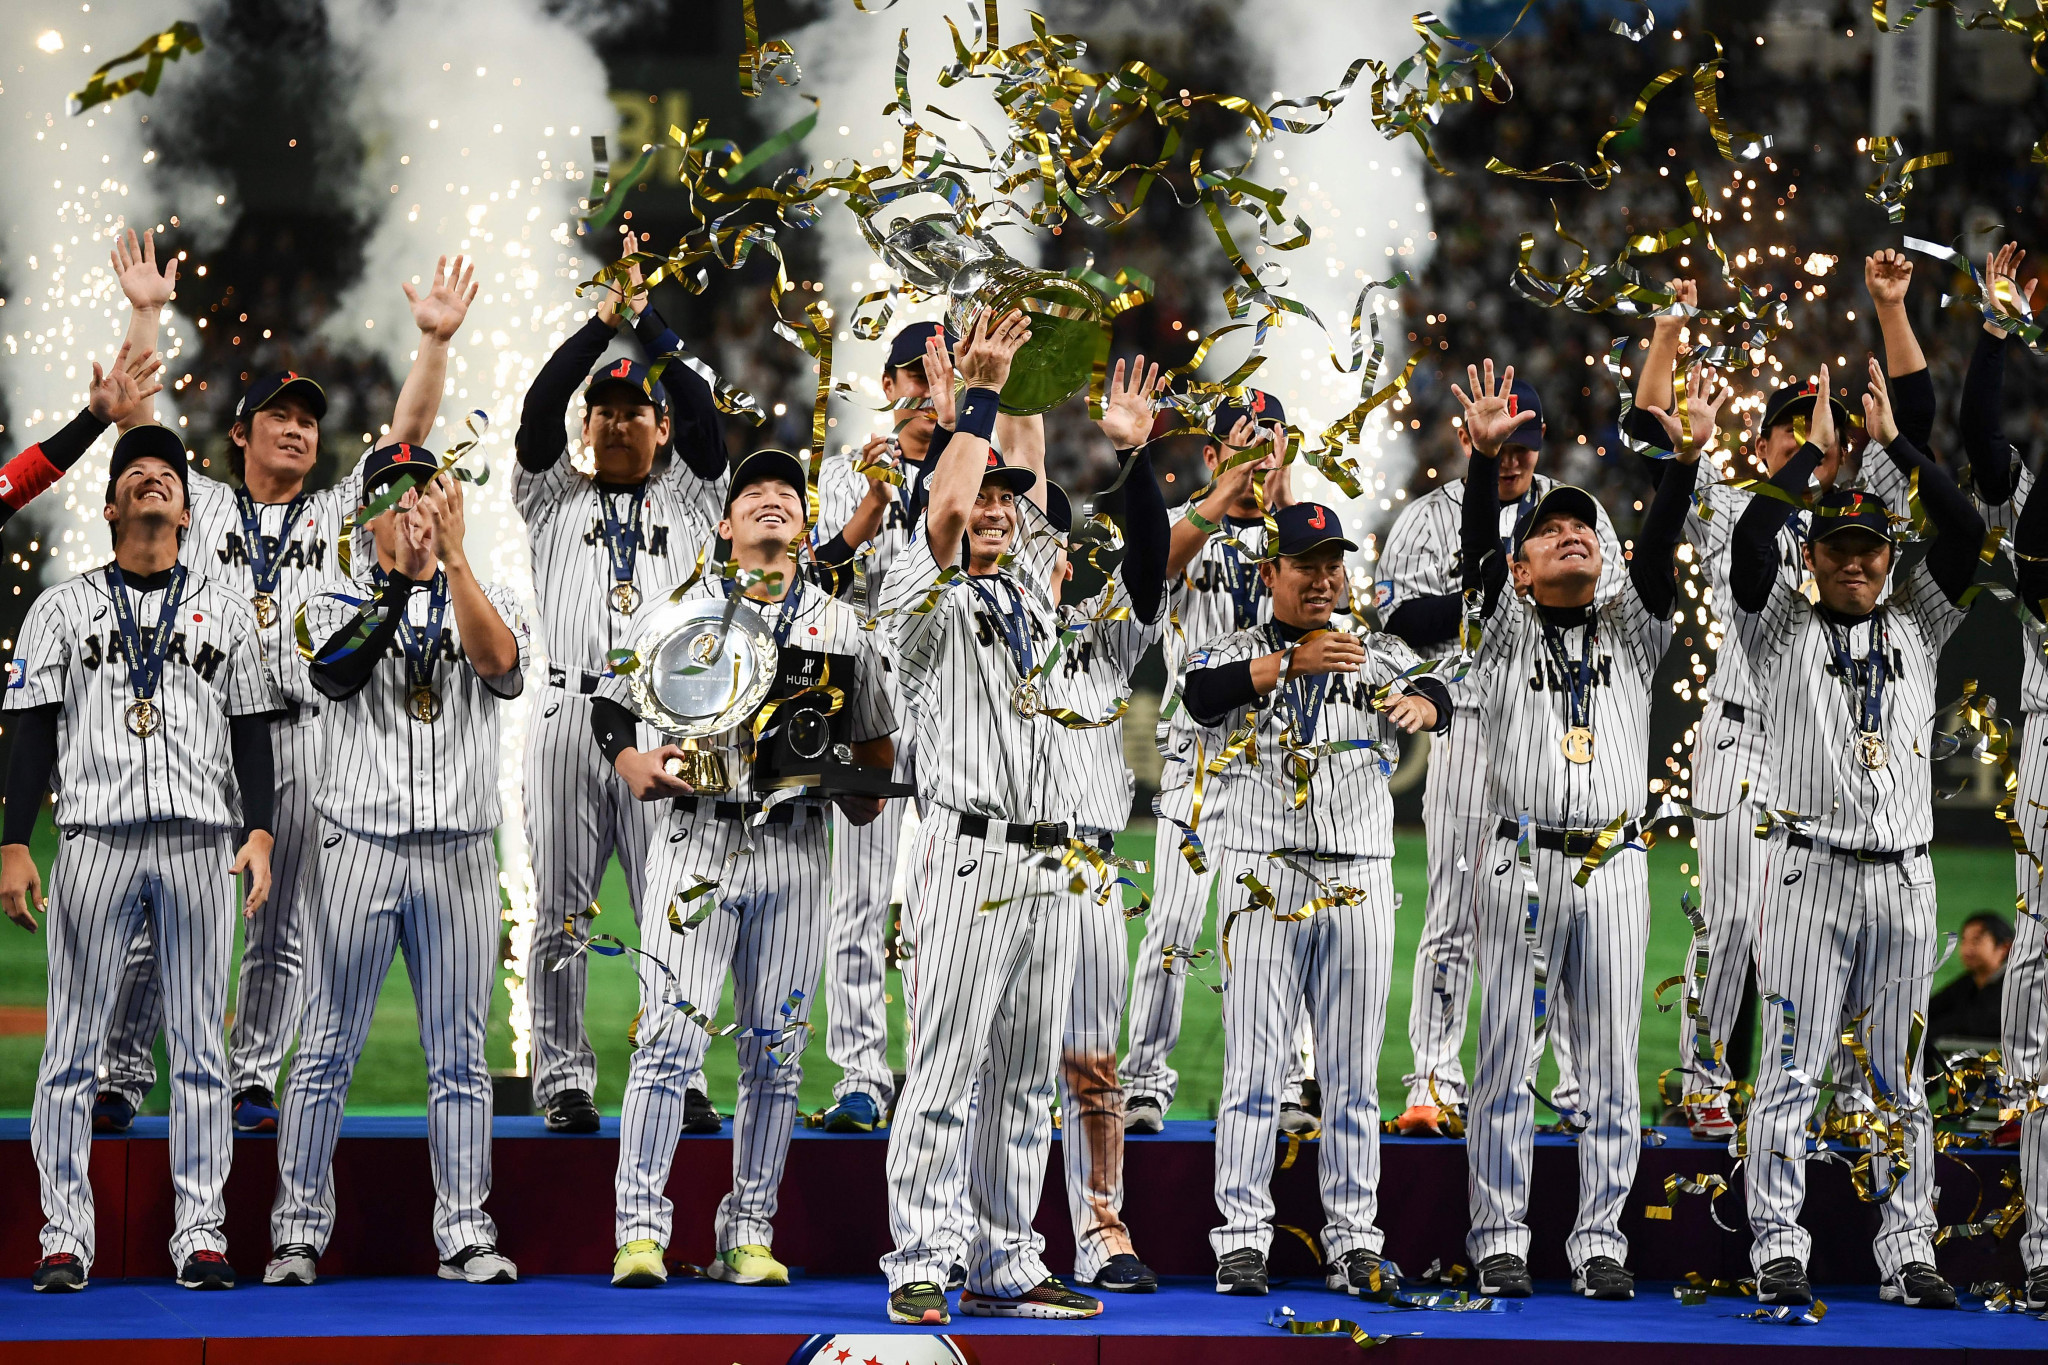 Japan were crowned the WBSC Premier12 champions after beating South Korea in the final ©Getty Images